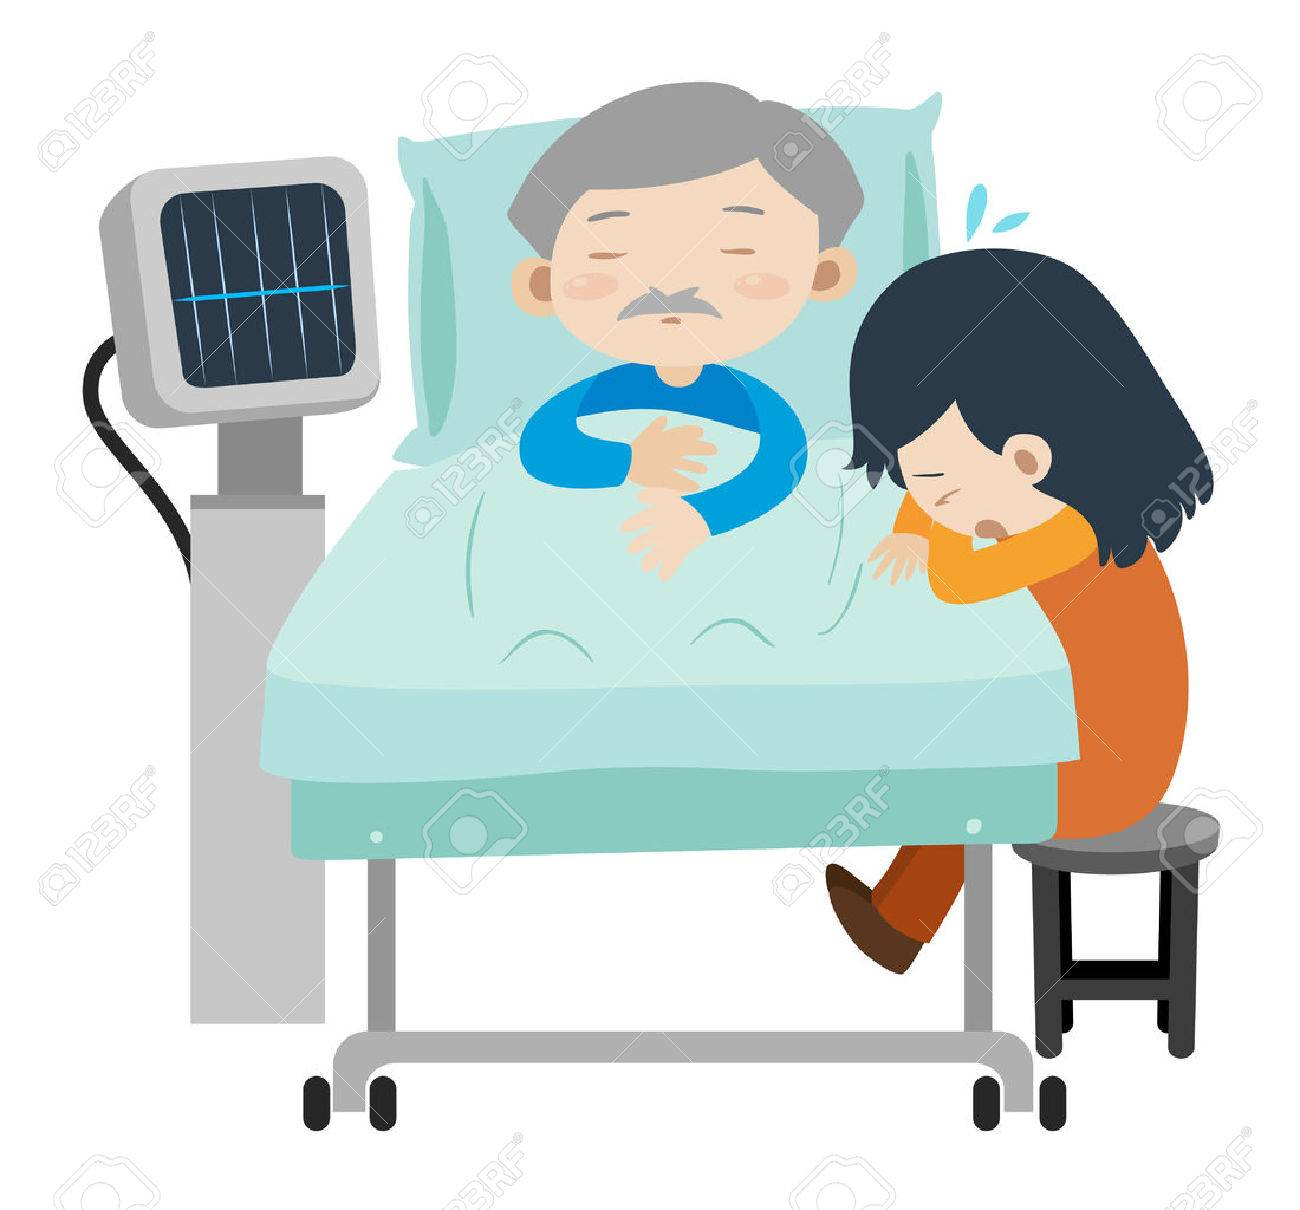 Dead man on hospital bed and girl crying illustration.